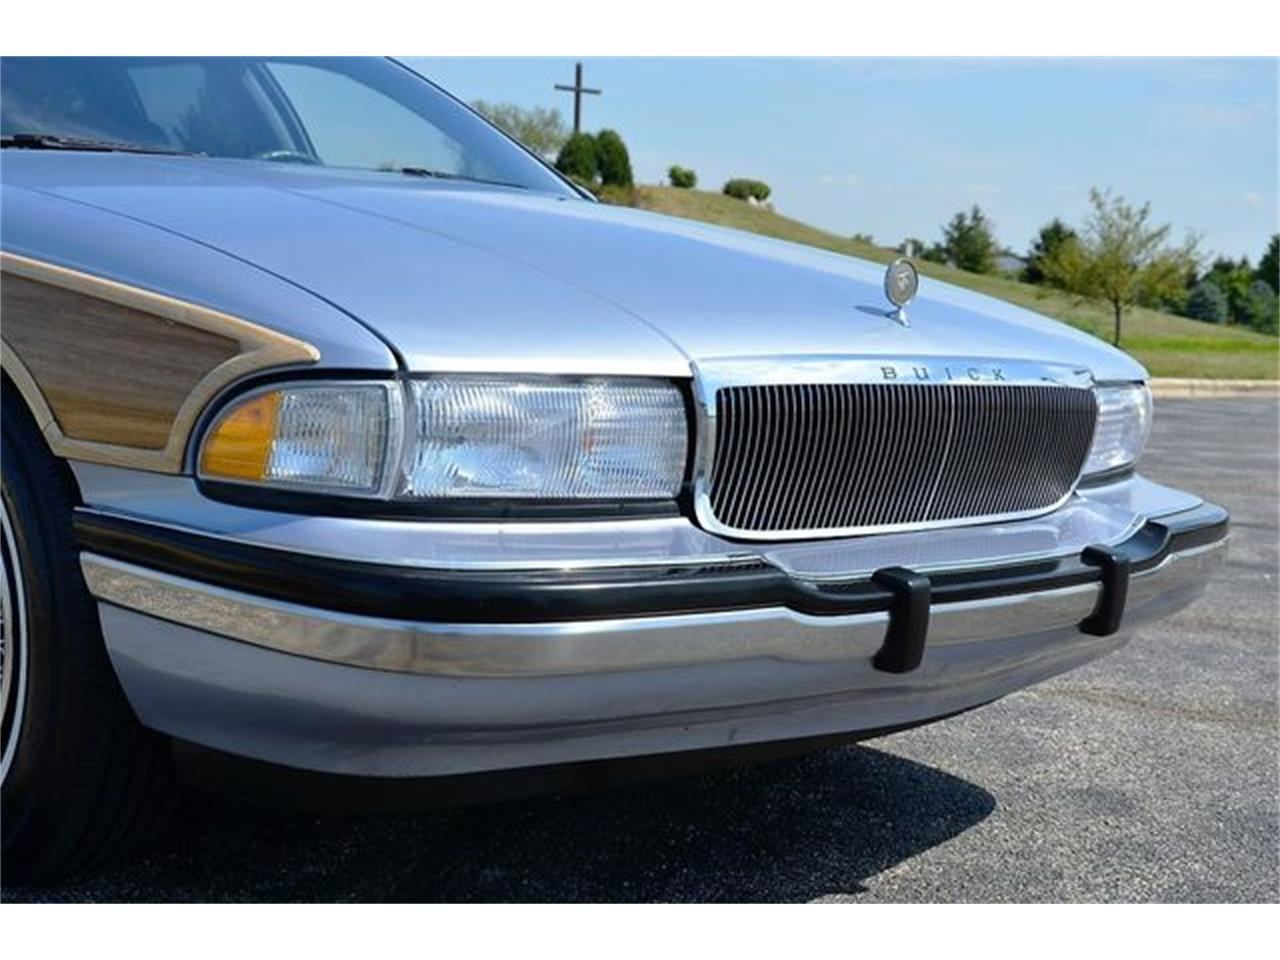 1996 Buick Roadmaster (CC-1386901) for sale in Plainfield, Illinois